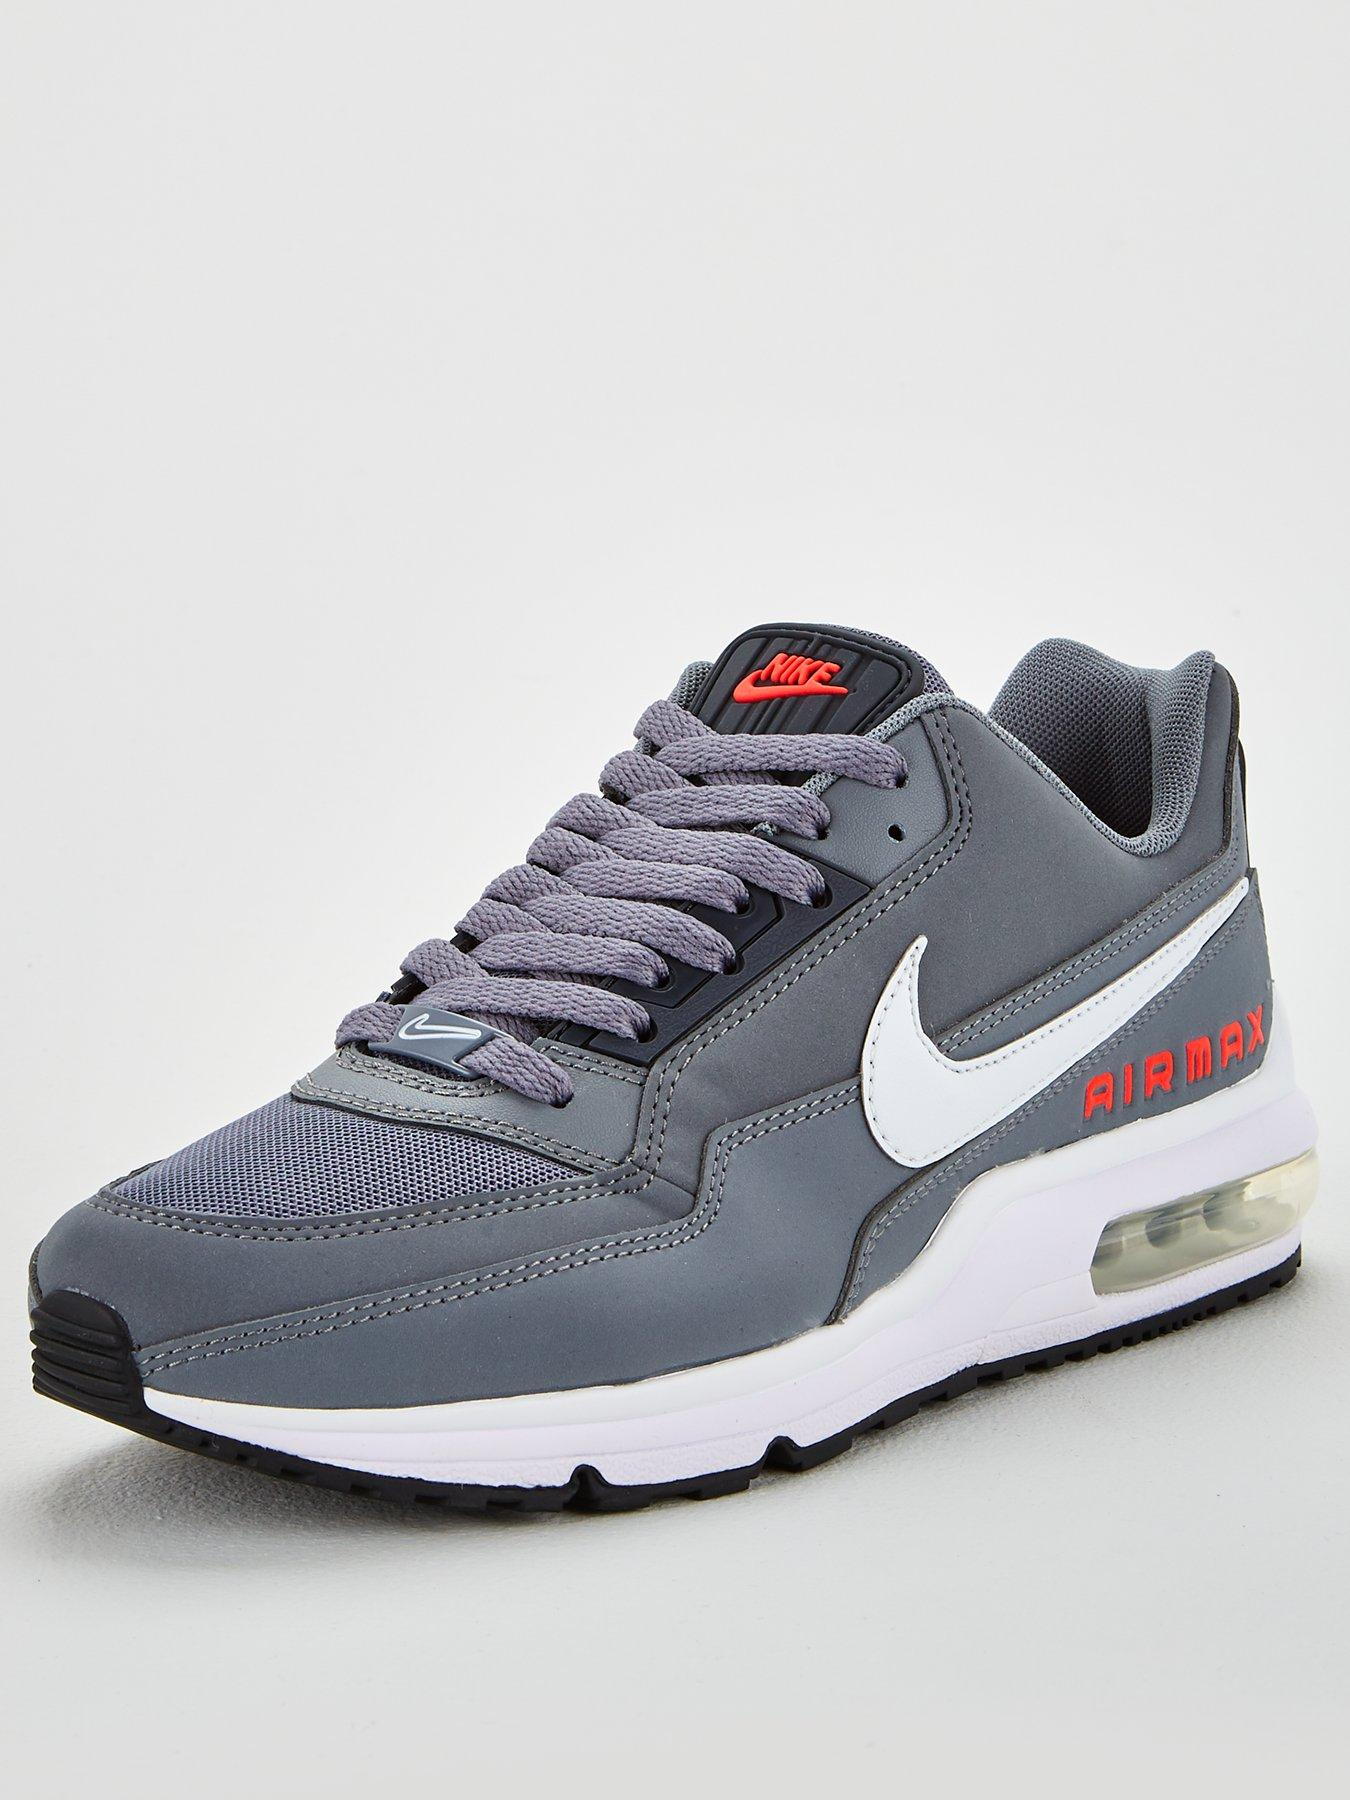 nike air max ltd 3 weiß rot